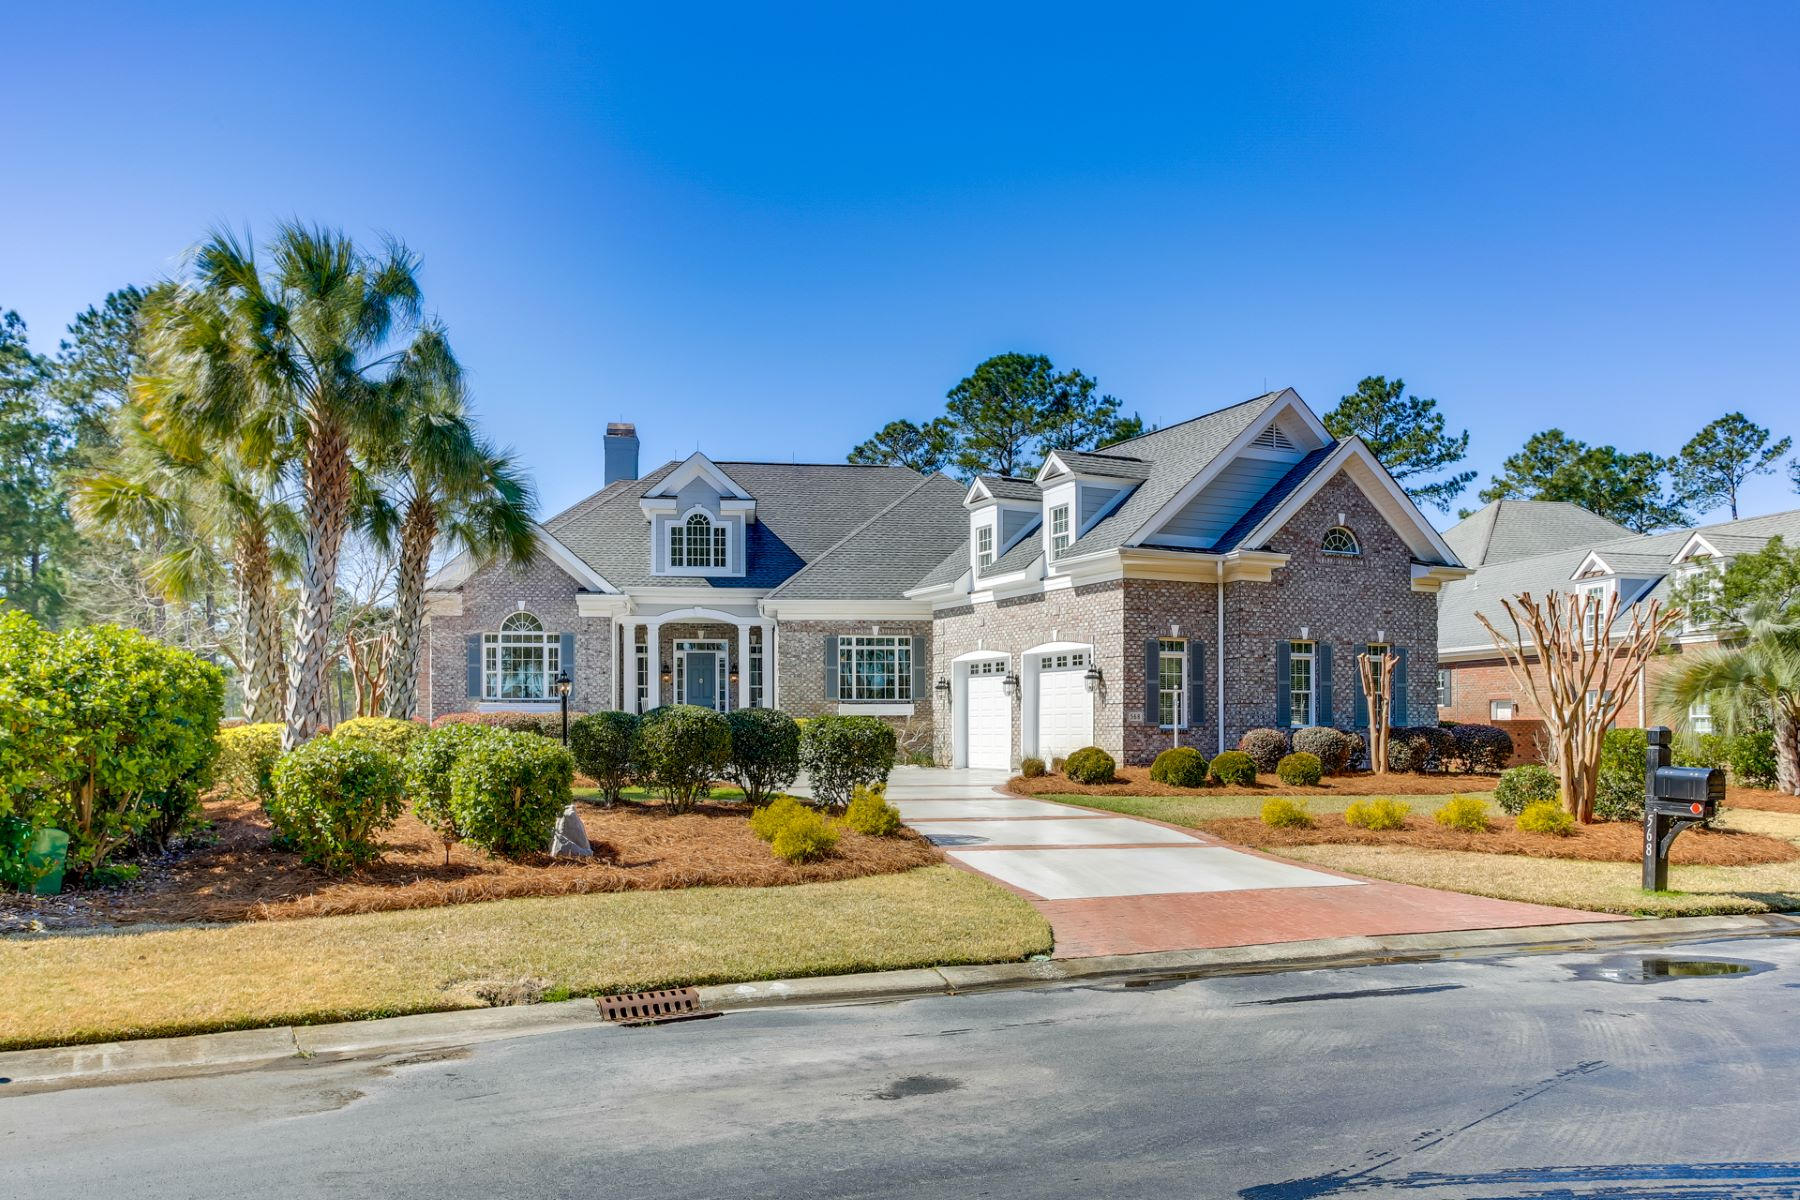 Single Family Homes for Active at Stunning Home Surrounded by Pristine Elegance 568 Wicklow Square SW Ocean Isle Beach, North Carolina 28469 United States